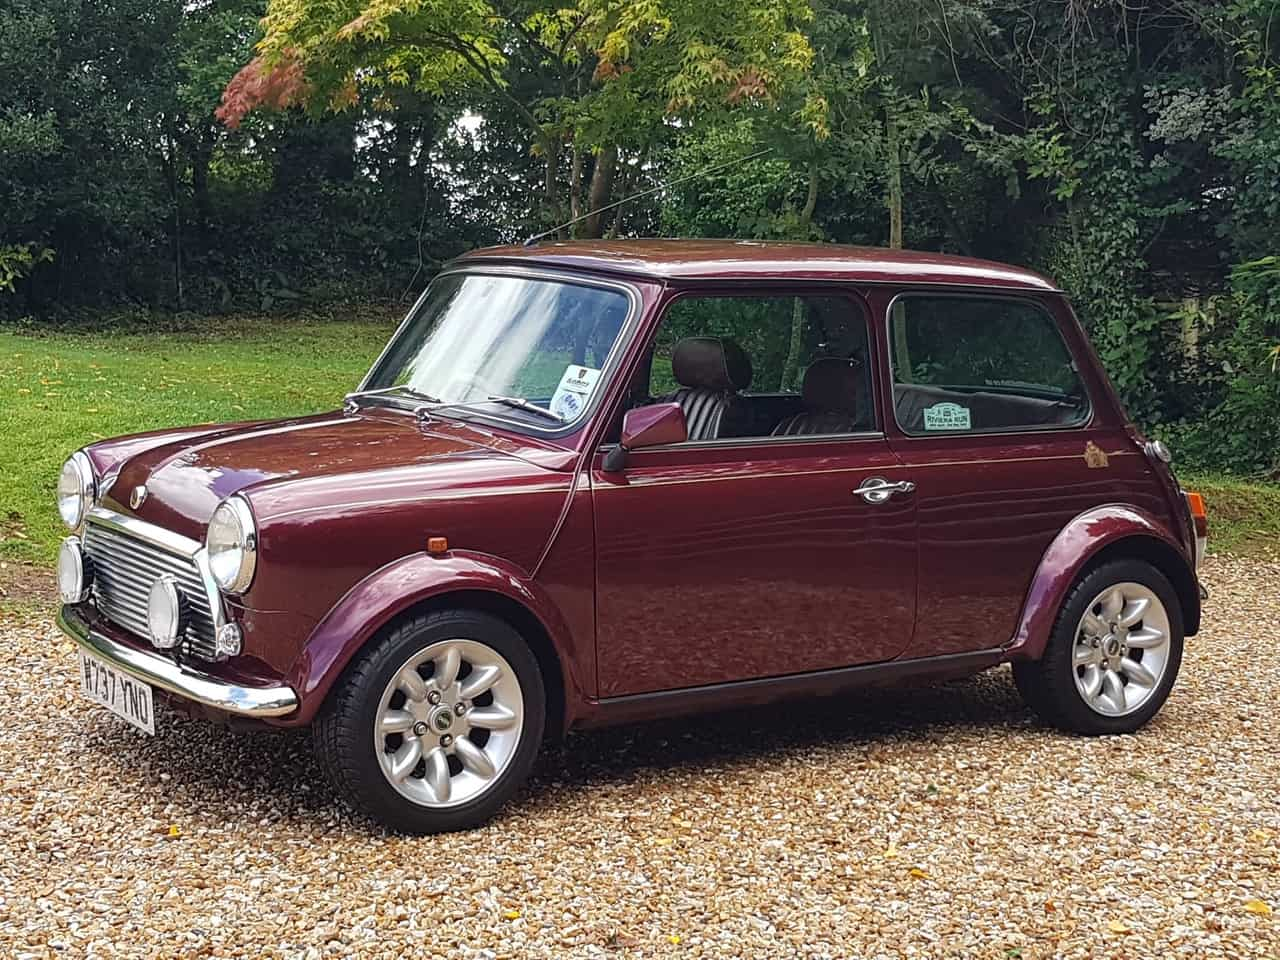 ** Deposit Paid, Available at the end of August ** 2000 Rover Mini Cooper 40 LE